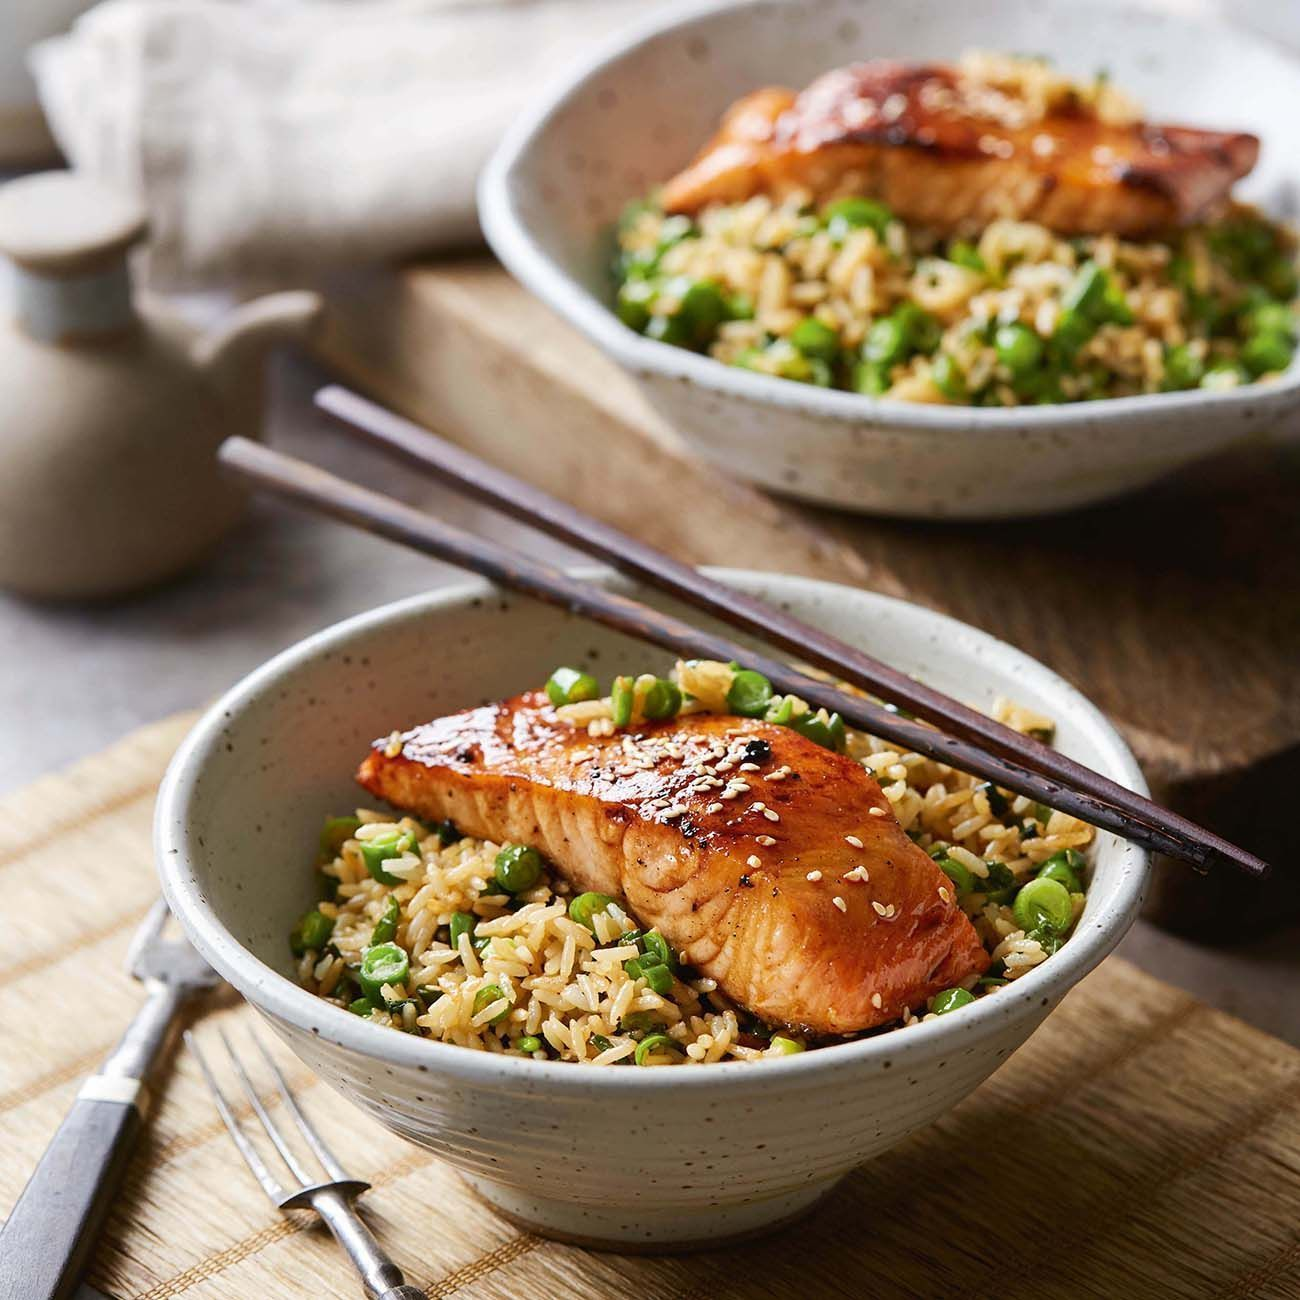 Teriyaki Salmon With Fried Rice Recipe : #Teriyaki #Salmon #With #Fried Directions 1. Combine soy, sugar, honey, garlic and ginger in a small bowl. Stir until sugar dissolves. 2. Place salmon in a dish and pour over one-th.. #recipe #teriyakisalmon Teriyaki Salmon With Fried Rice Recipe : #Teriyaki #Salmon #With #Fried Directions 1. Combine soy, sugar, honey, garlic and ginger in a small bowl. Stir until sugar dissolves. 2. Place salmon in a dish and pour over one-th.. #recipe #teriyakisalmon Te #teriyakisalmon